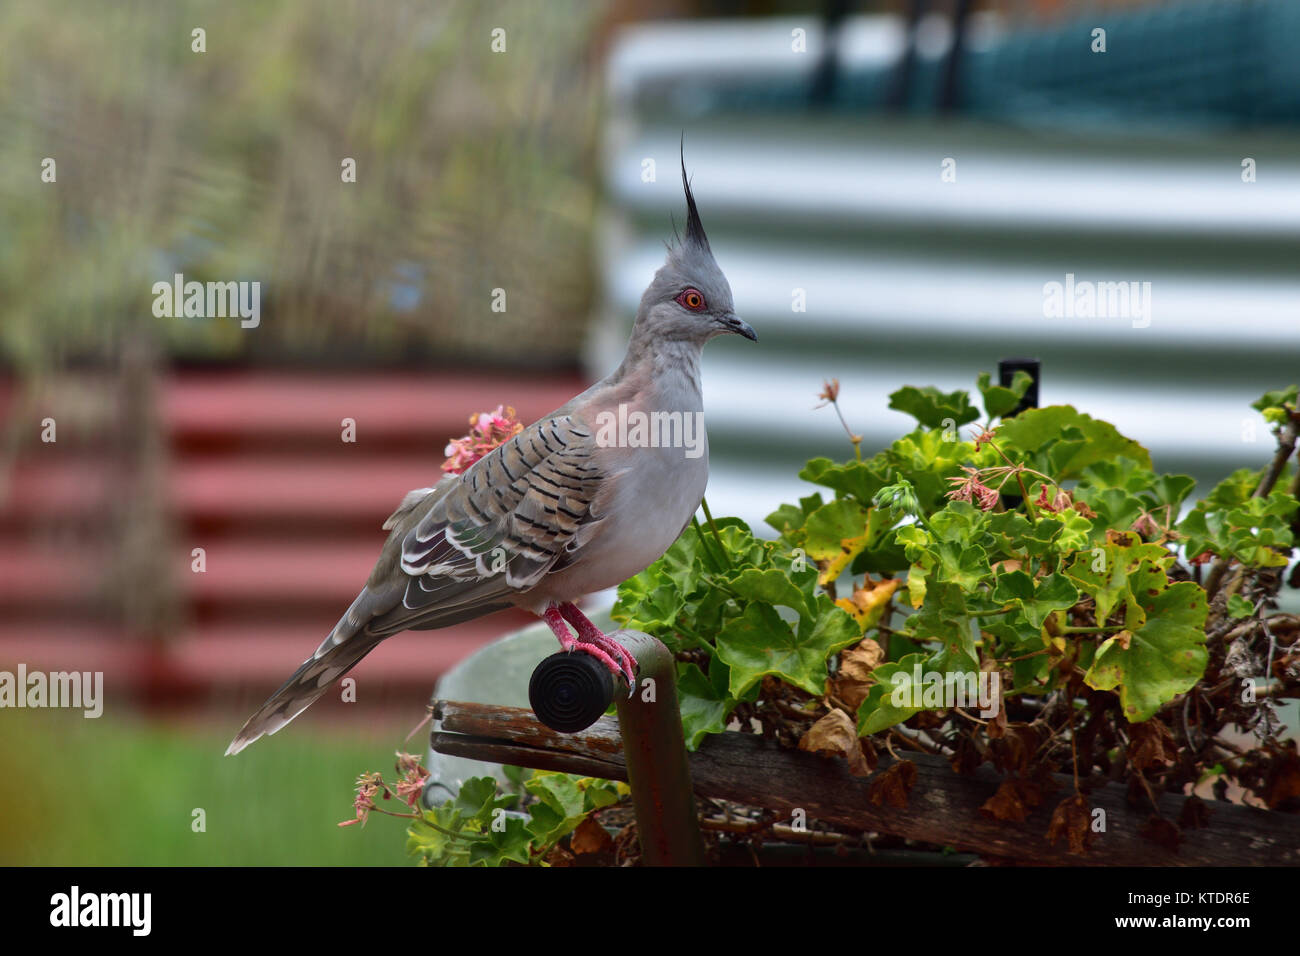 An Australian Crested Pigeon resting on a Garden Wheelbarrow Stock Photo